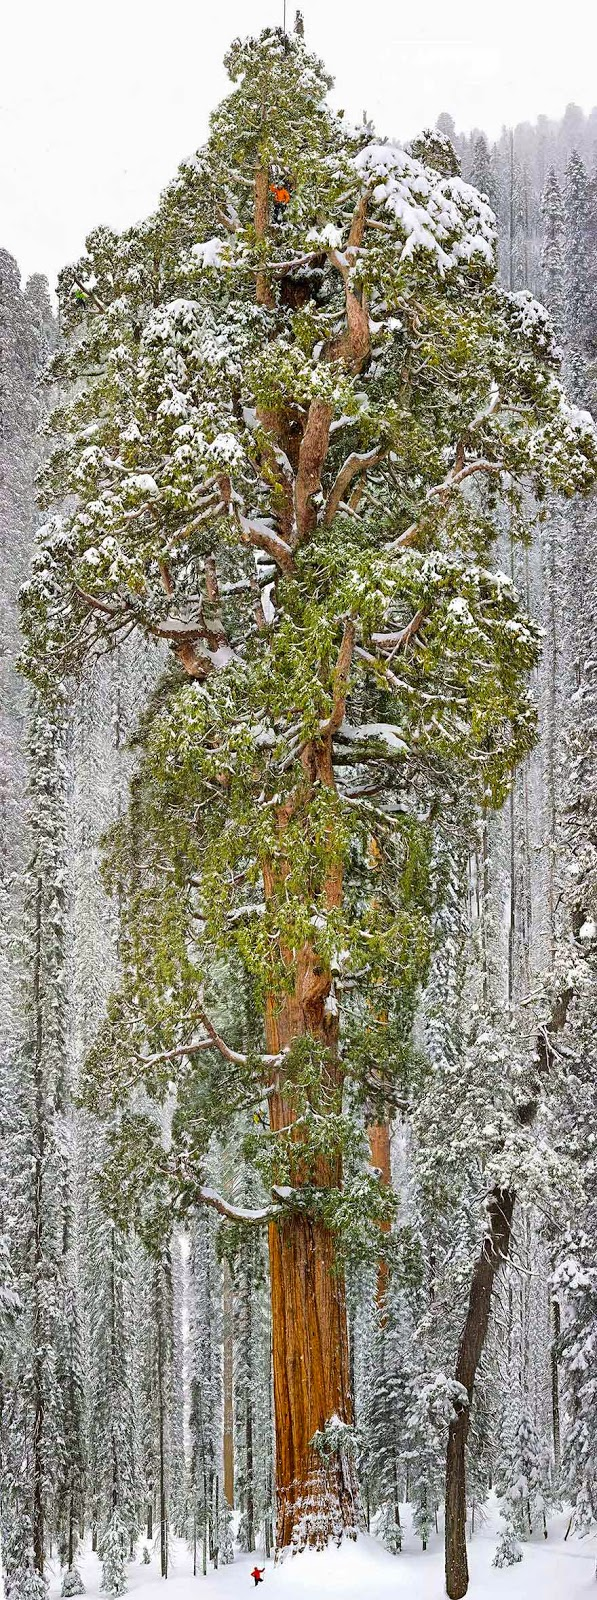 #10. The President, the world's 3rd largest Sequoia in California - 16 Of The Most Magnificent Trees In The World.